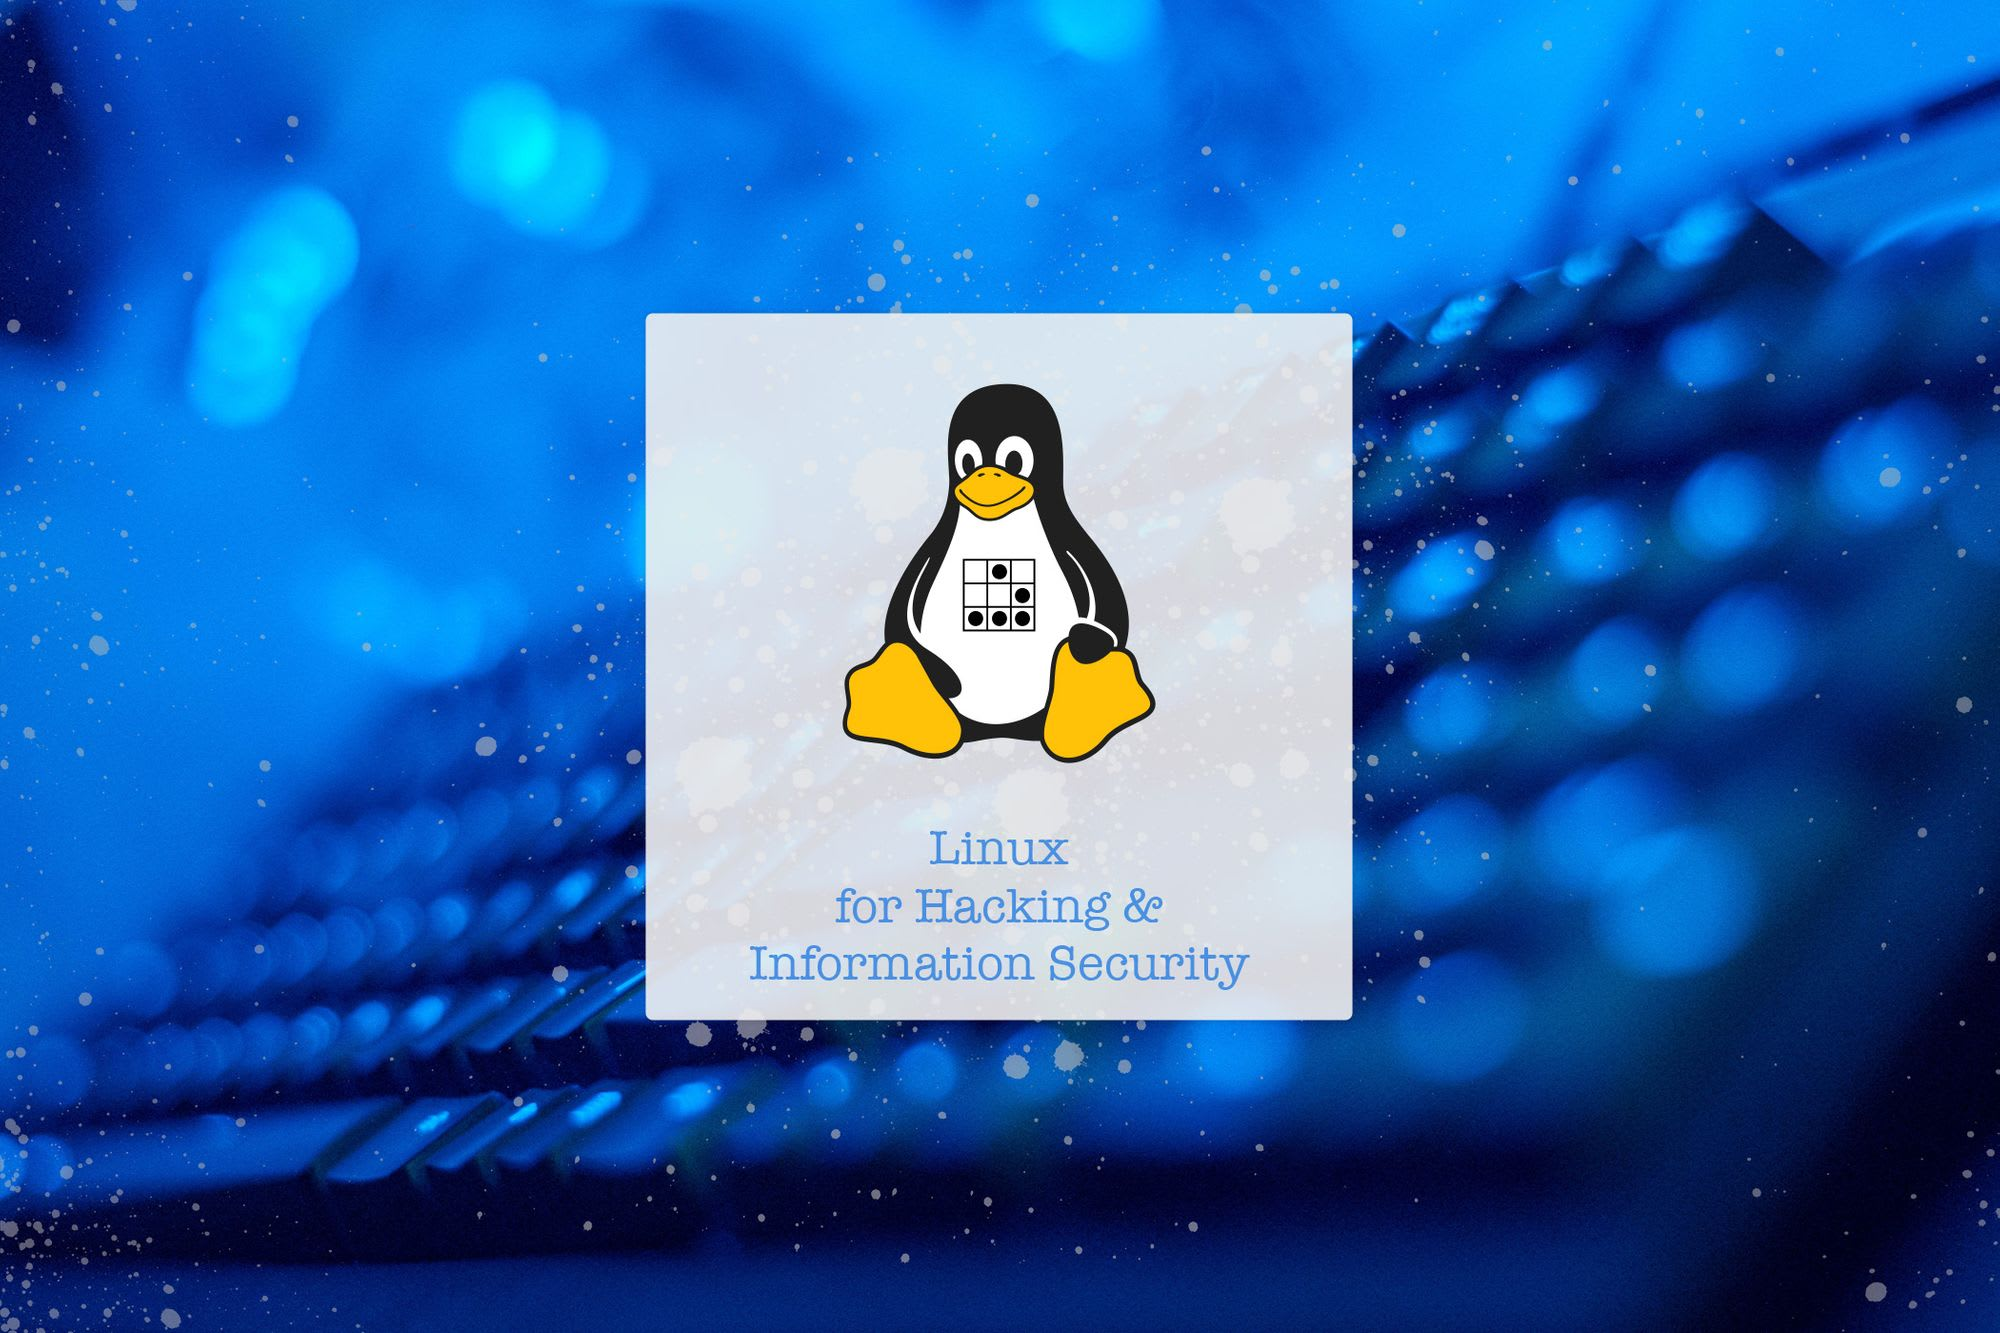 List of Linux Distros for Hacking